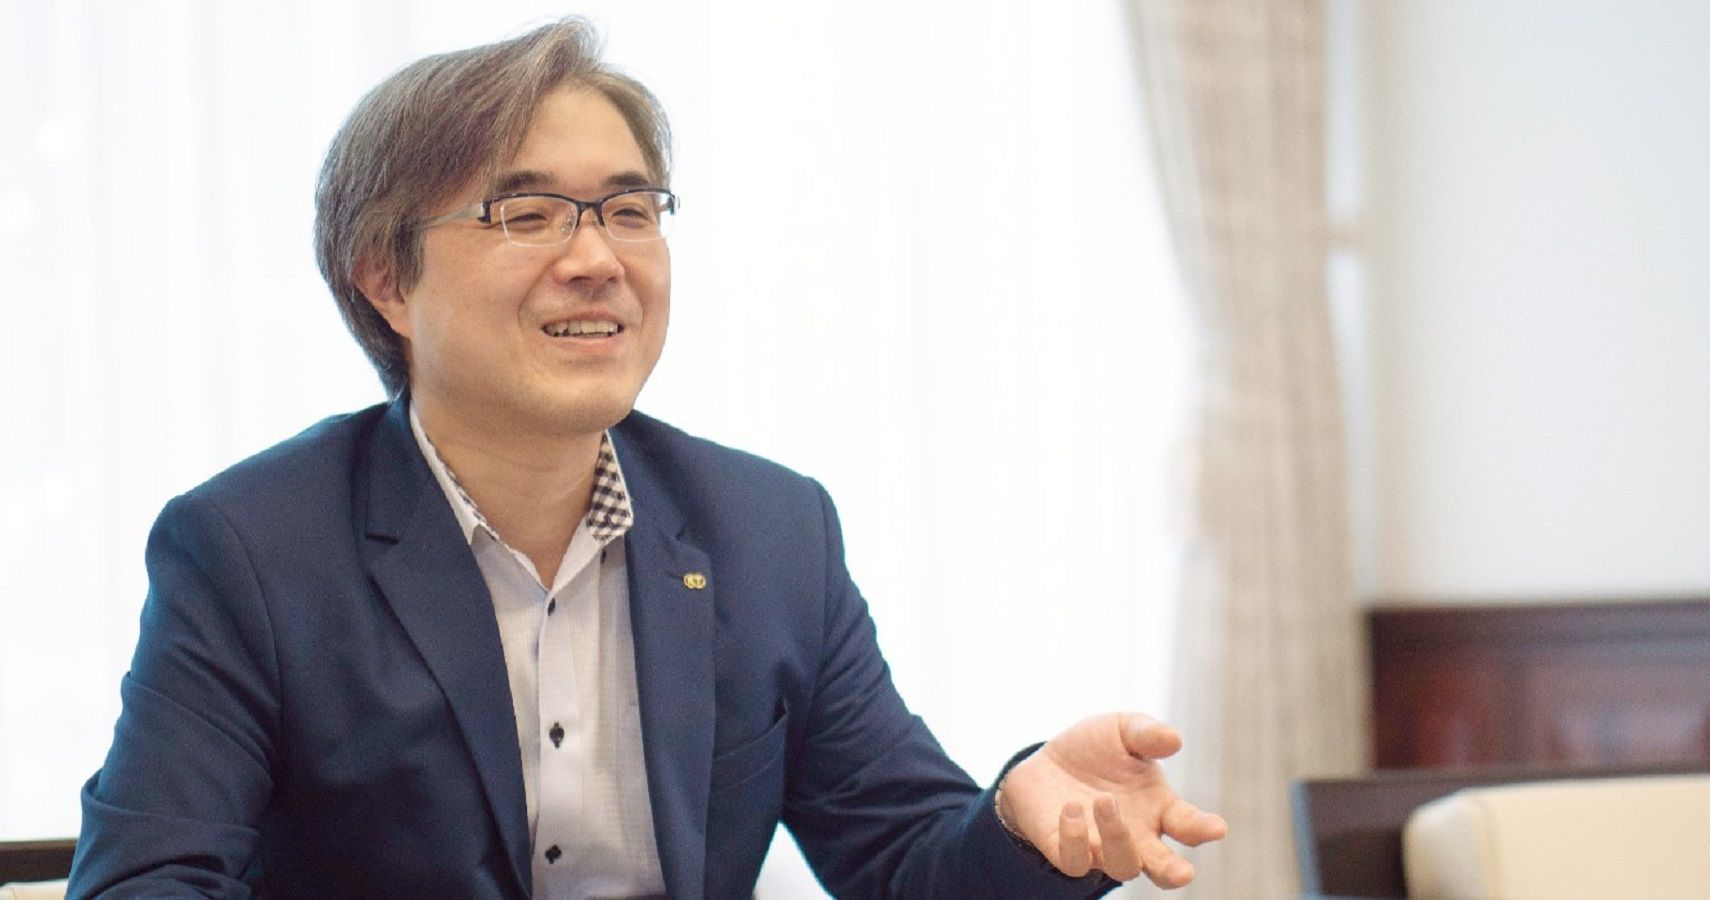 Samurai Warriors 5 Interview With Koei Tecmo Games President Hisashi Koinuma On Spin-Offs, Omega Force, PS5, And More